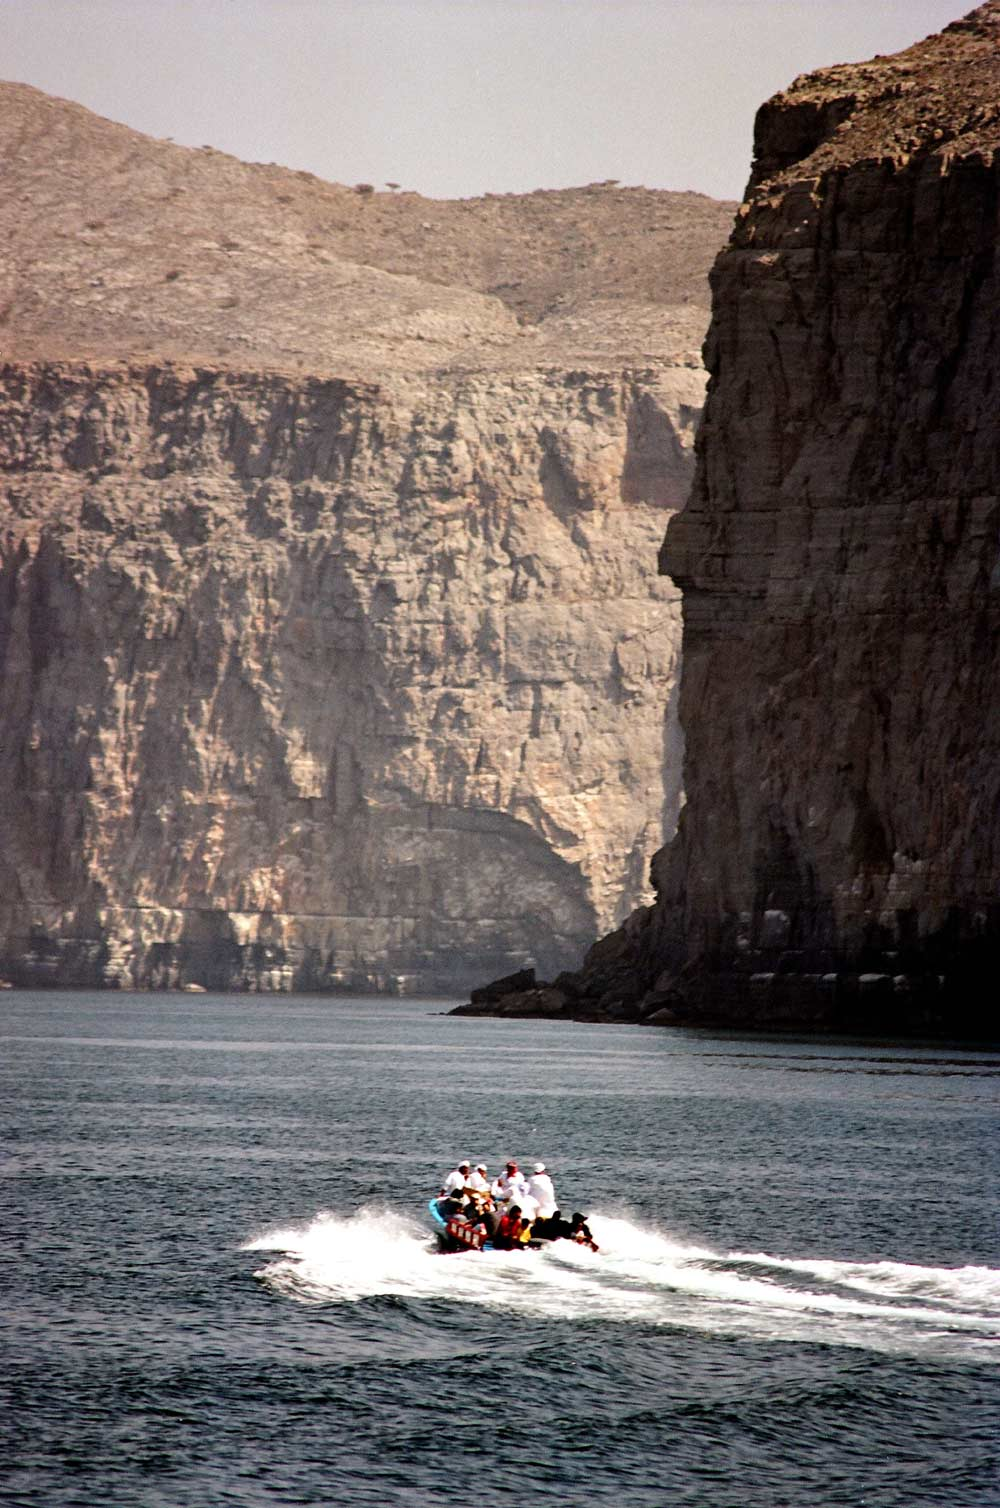 Oman - Canyon river boat